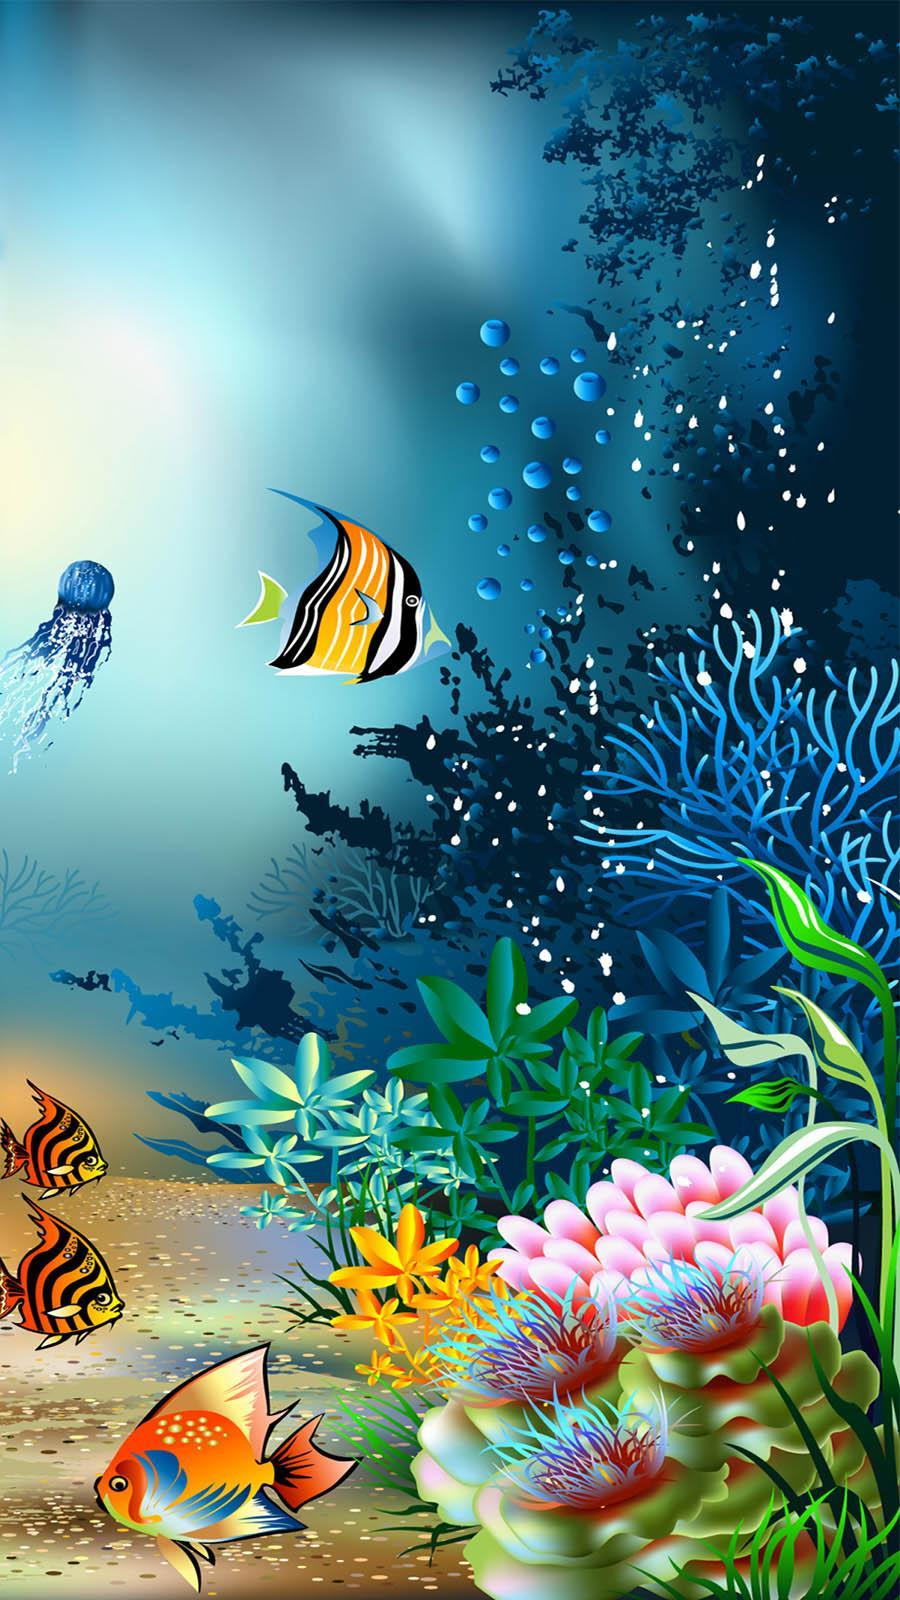 Coral Reef Wallpaper 4k Ultra Hd For Android Apk Download